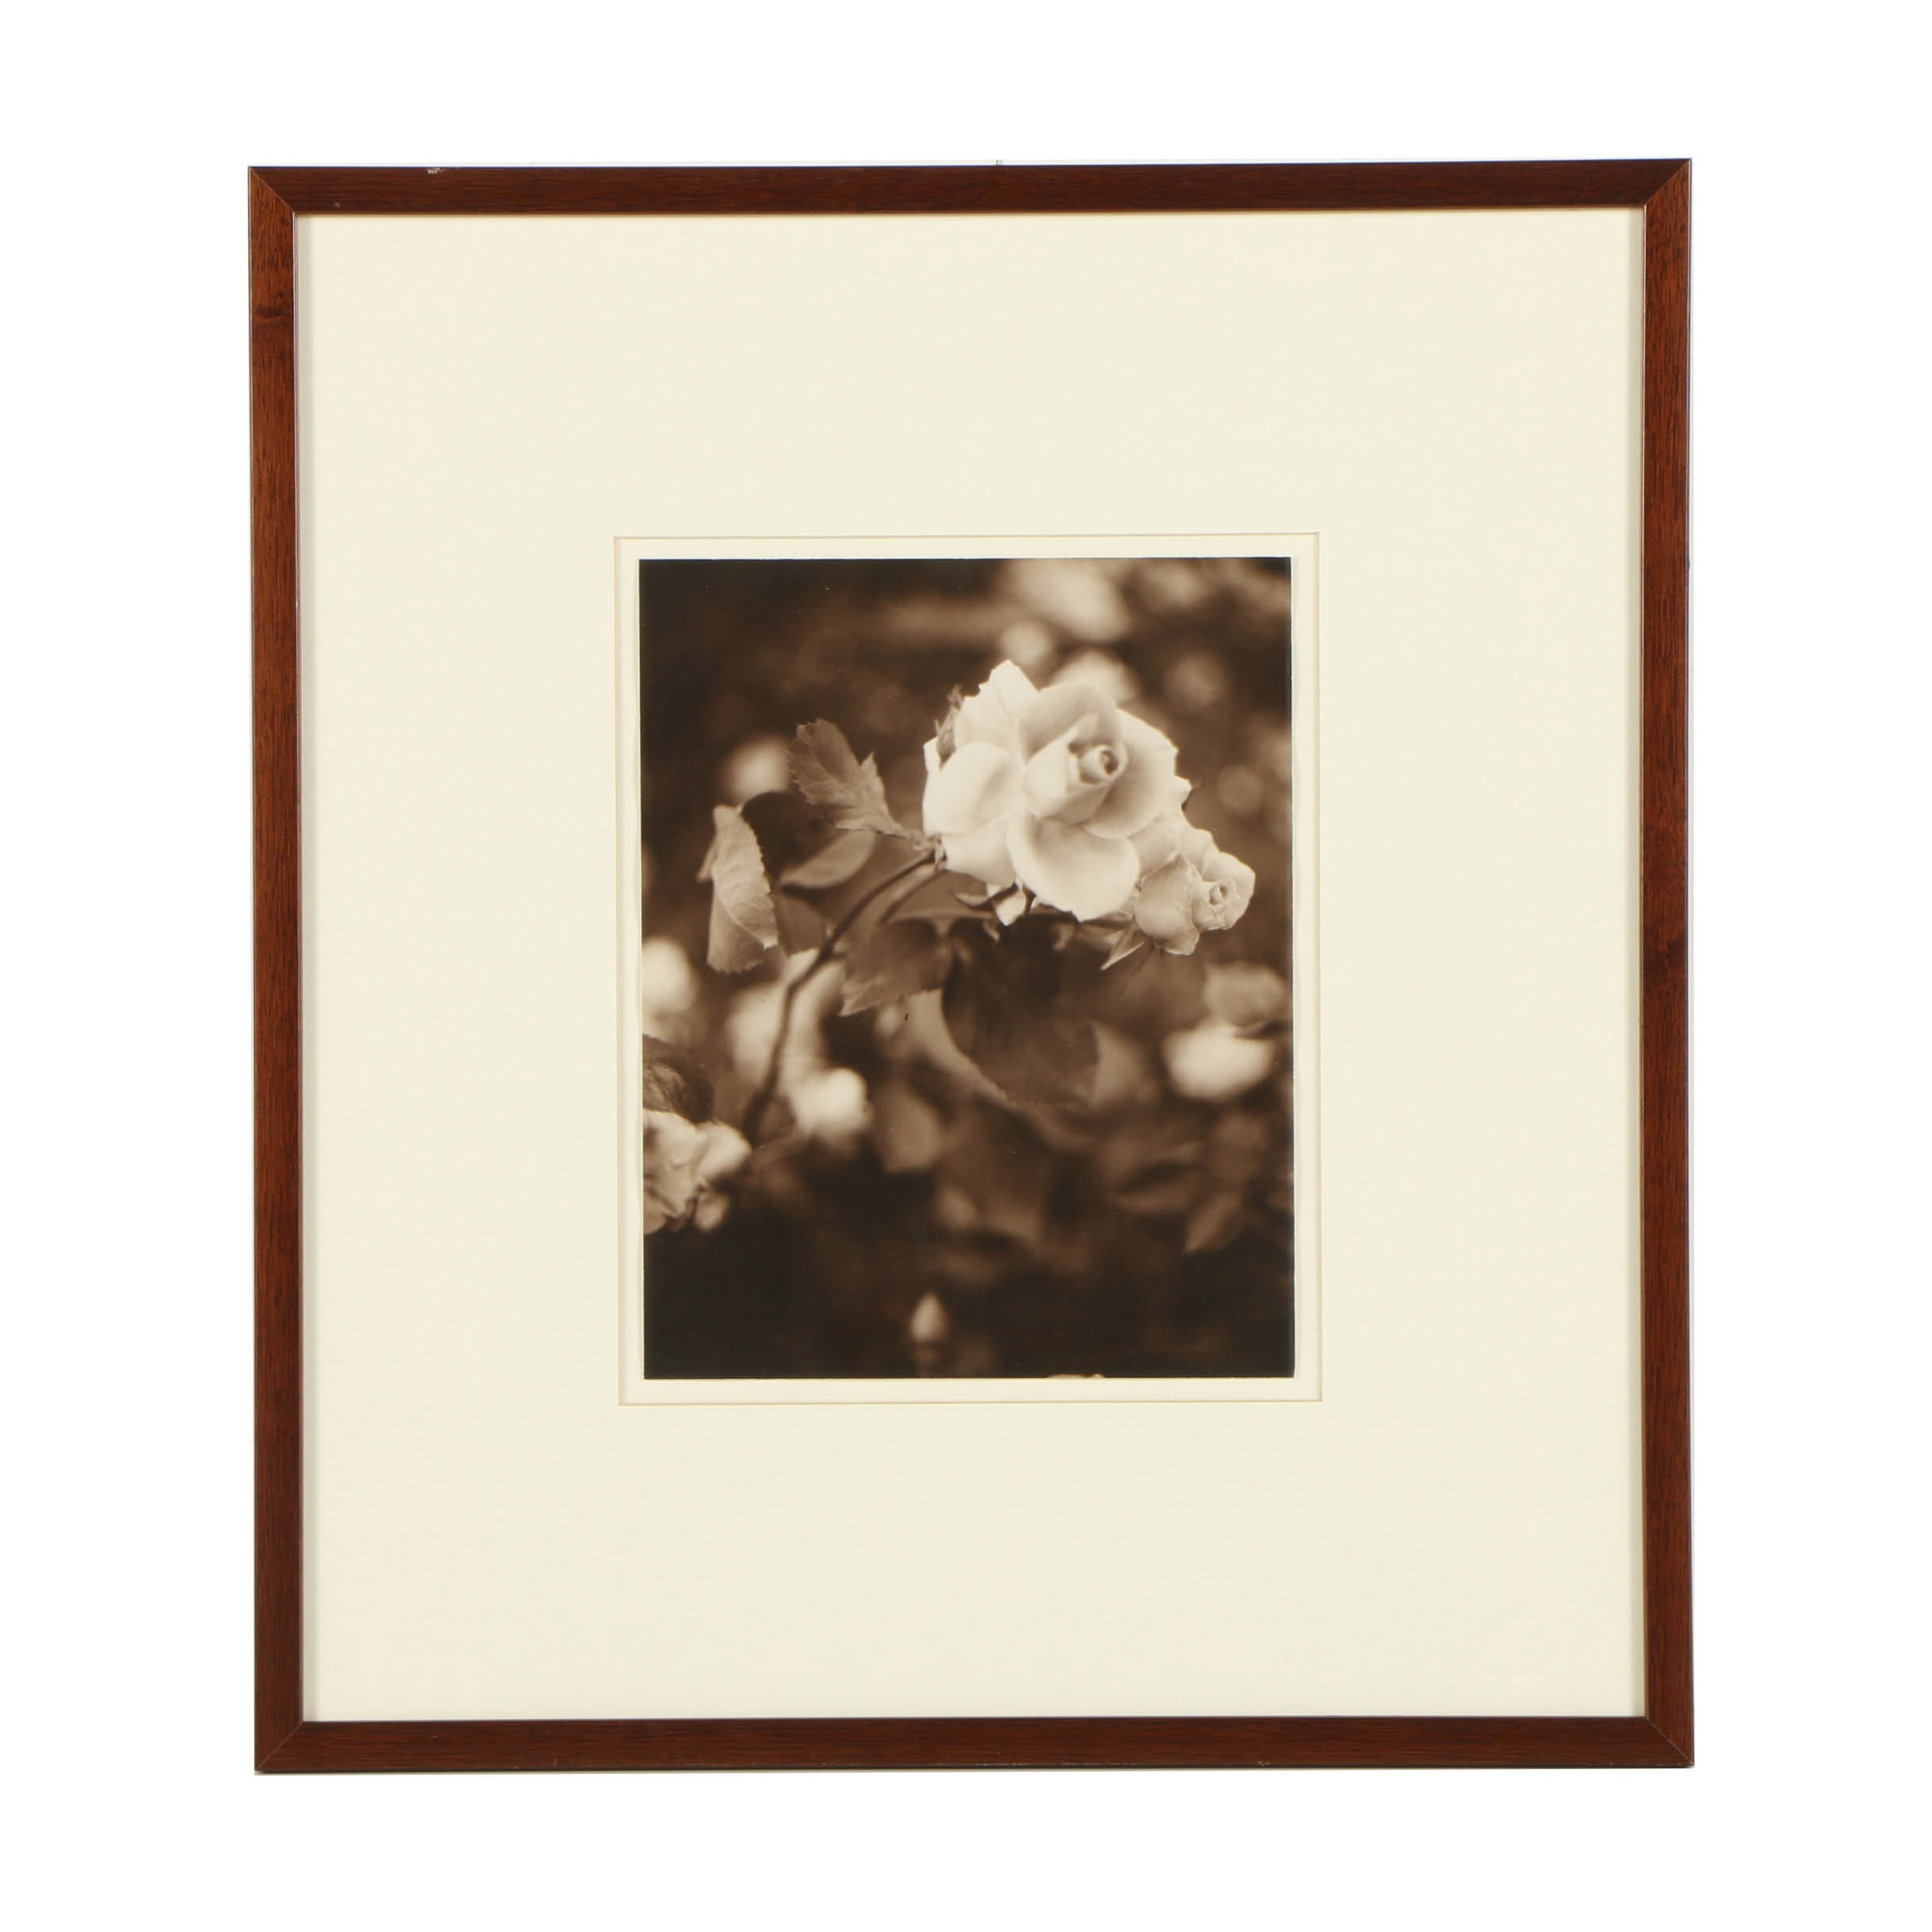 Louis Papp Sepia-Toned Analog Photograph of Roses